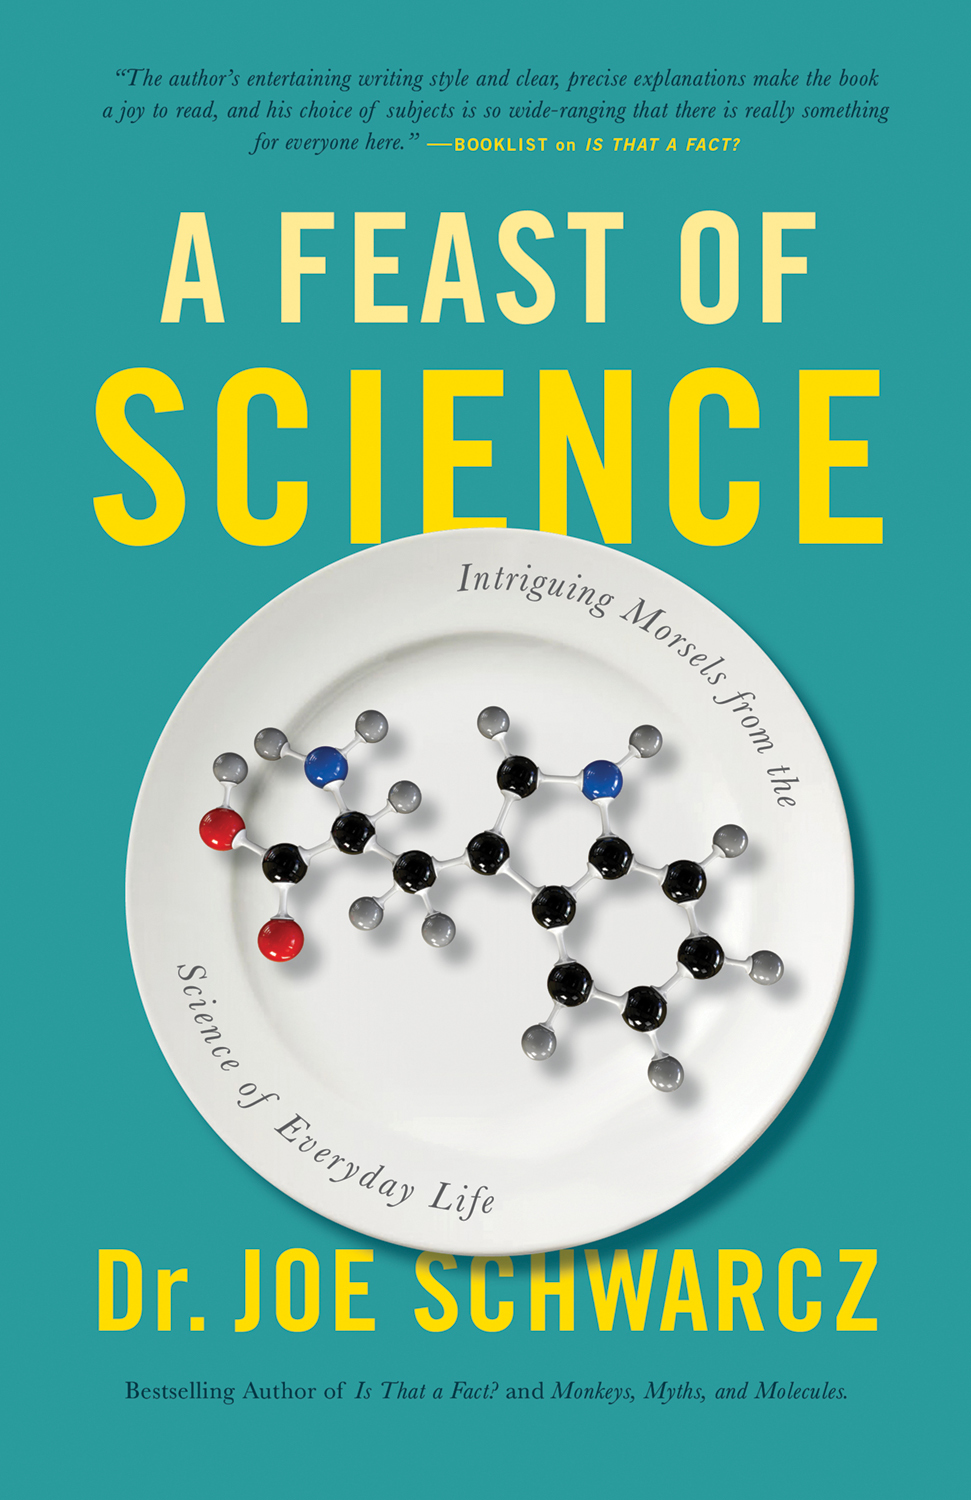 A Feast of Science - Intriguing Morsels from the Science of Everyday Life 2018 by Joe Schwarcz